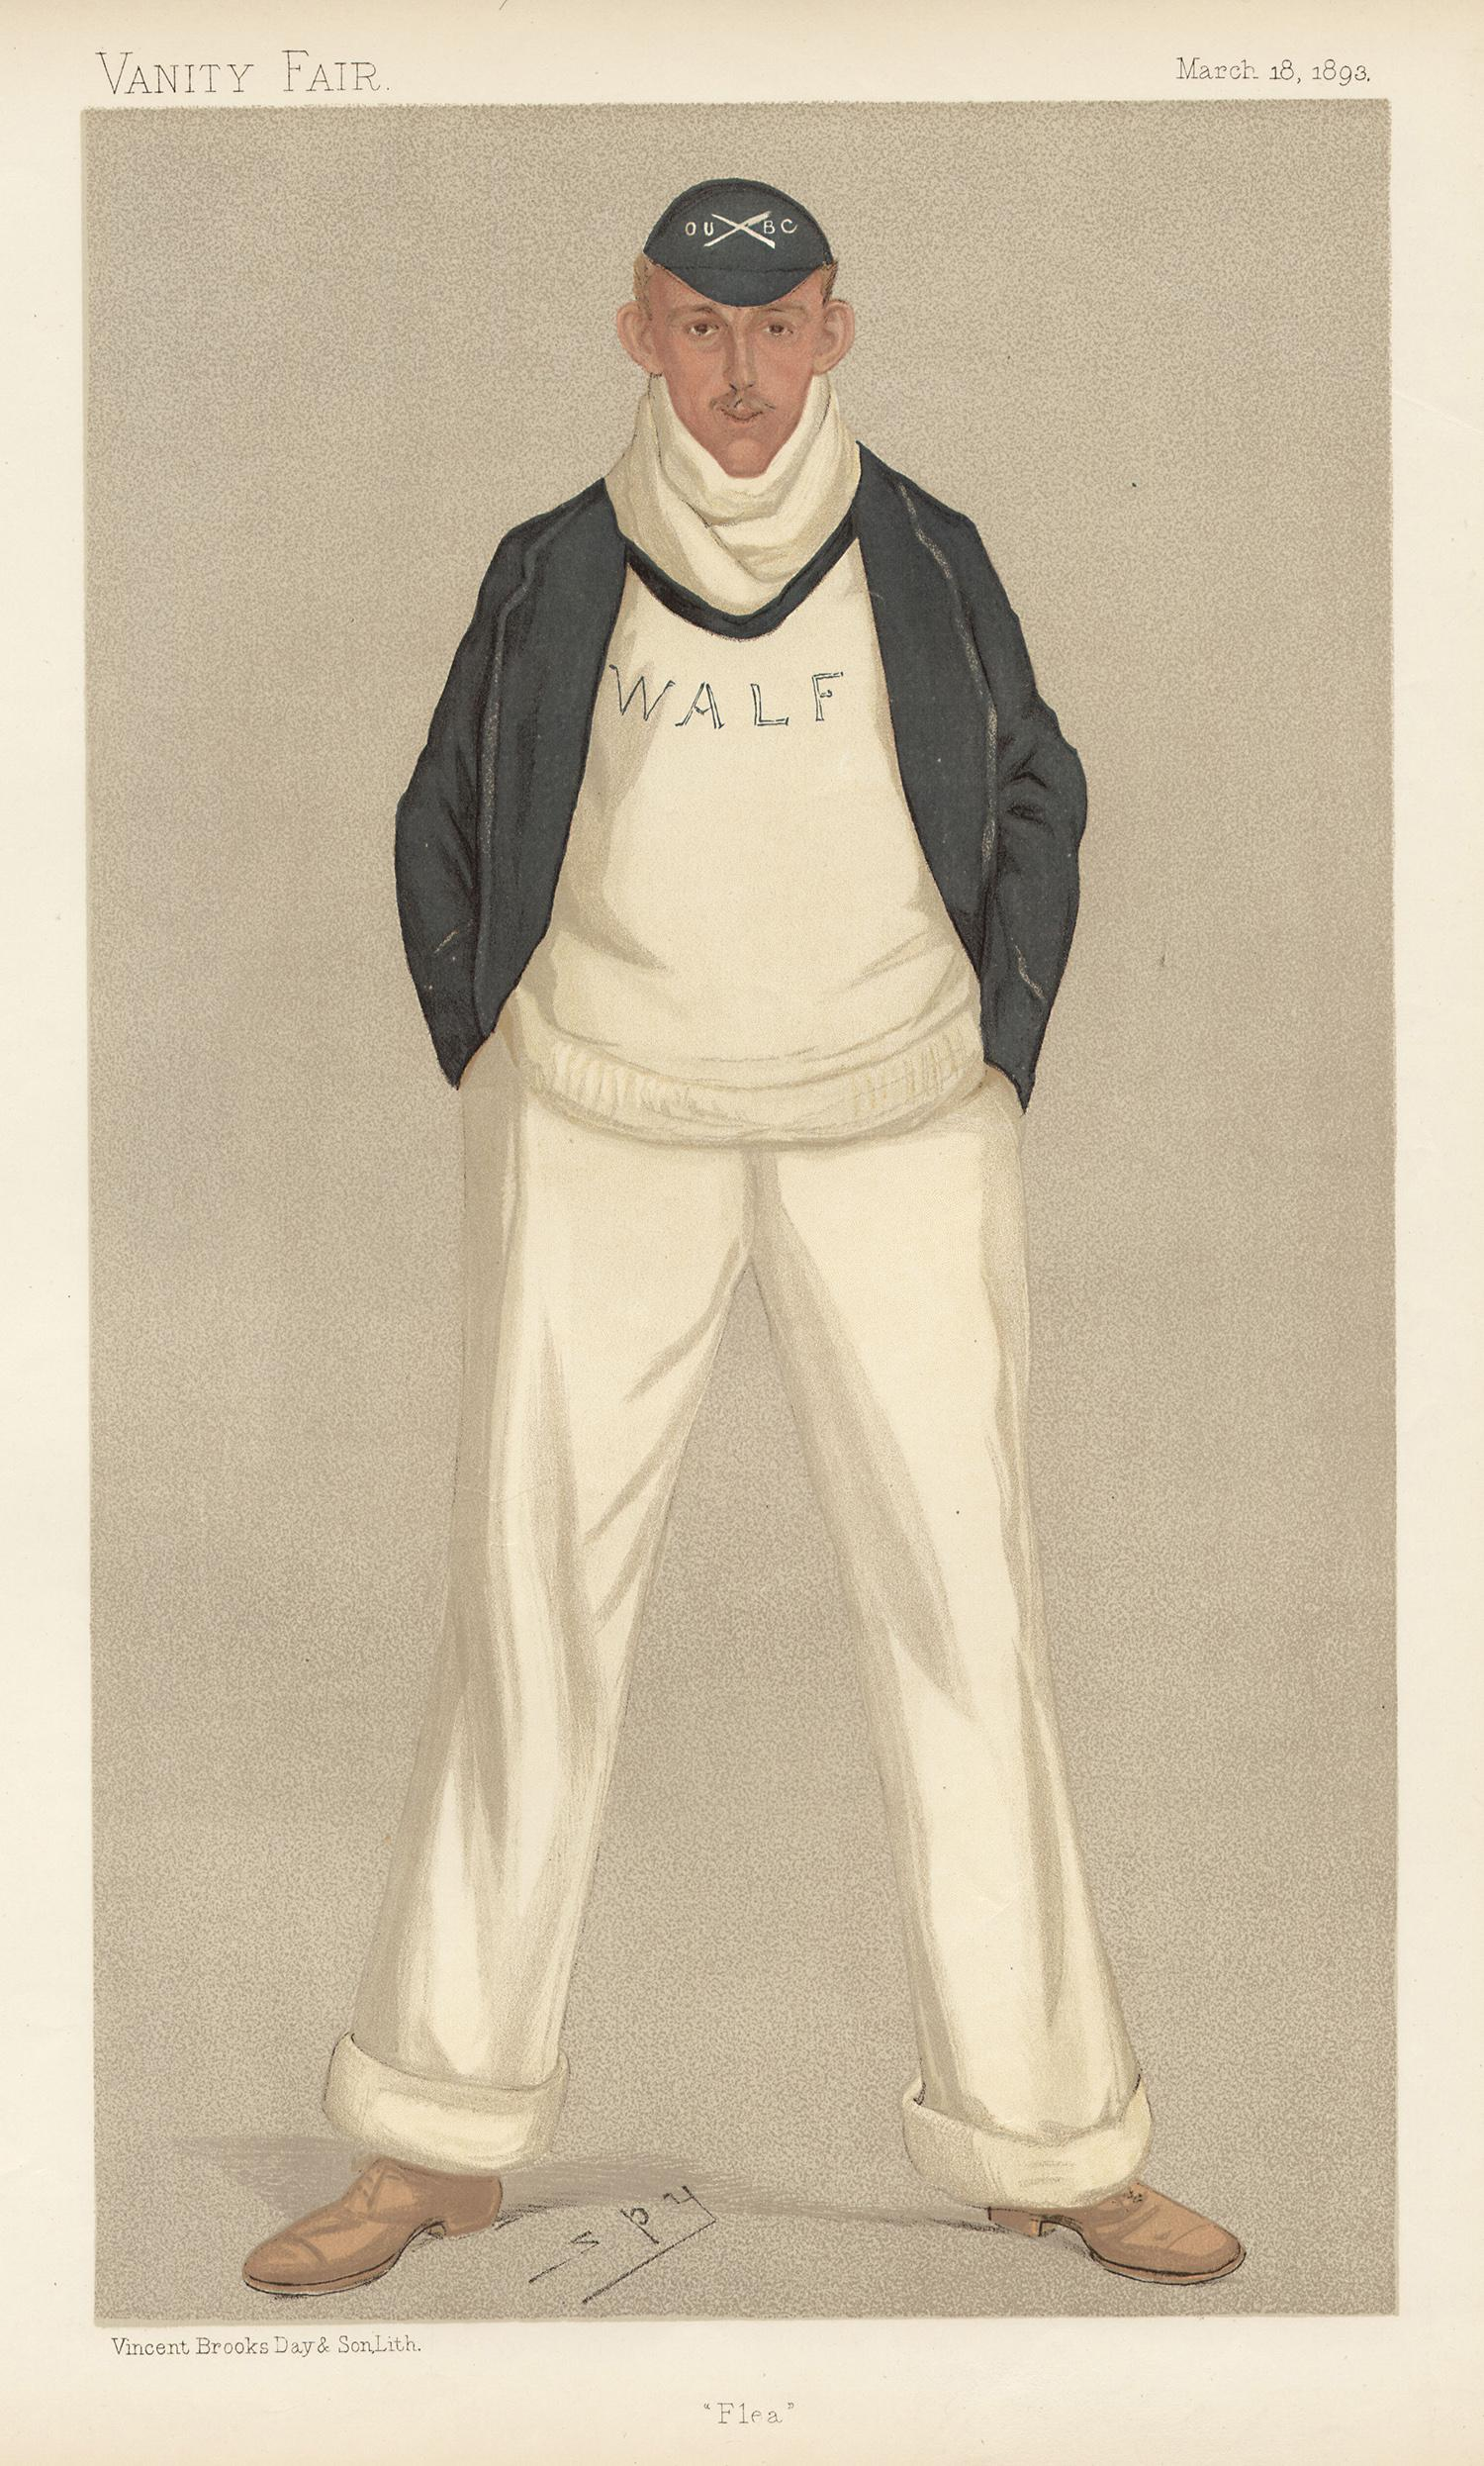 William Fletcher, rower, Vanity Fair rowing portrait chromolithograph, 1893